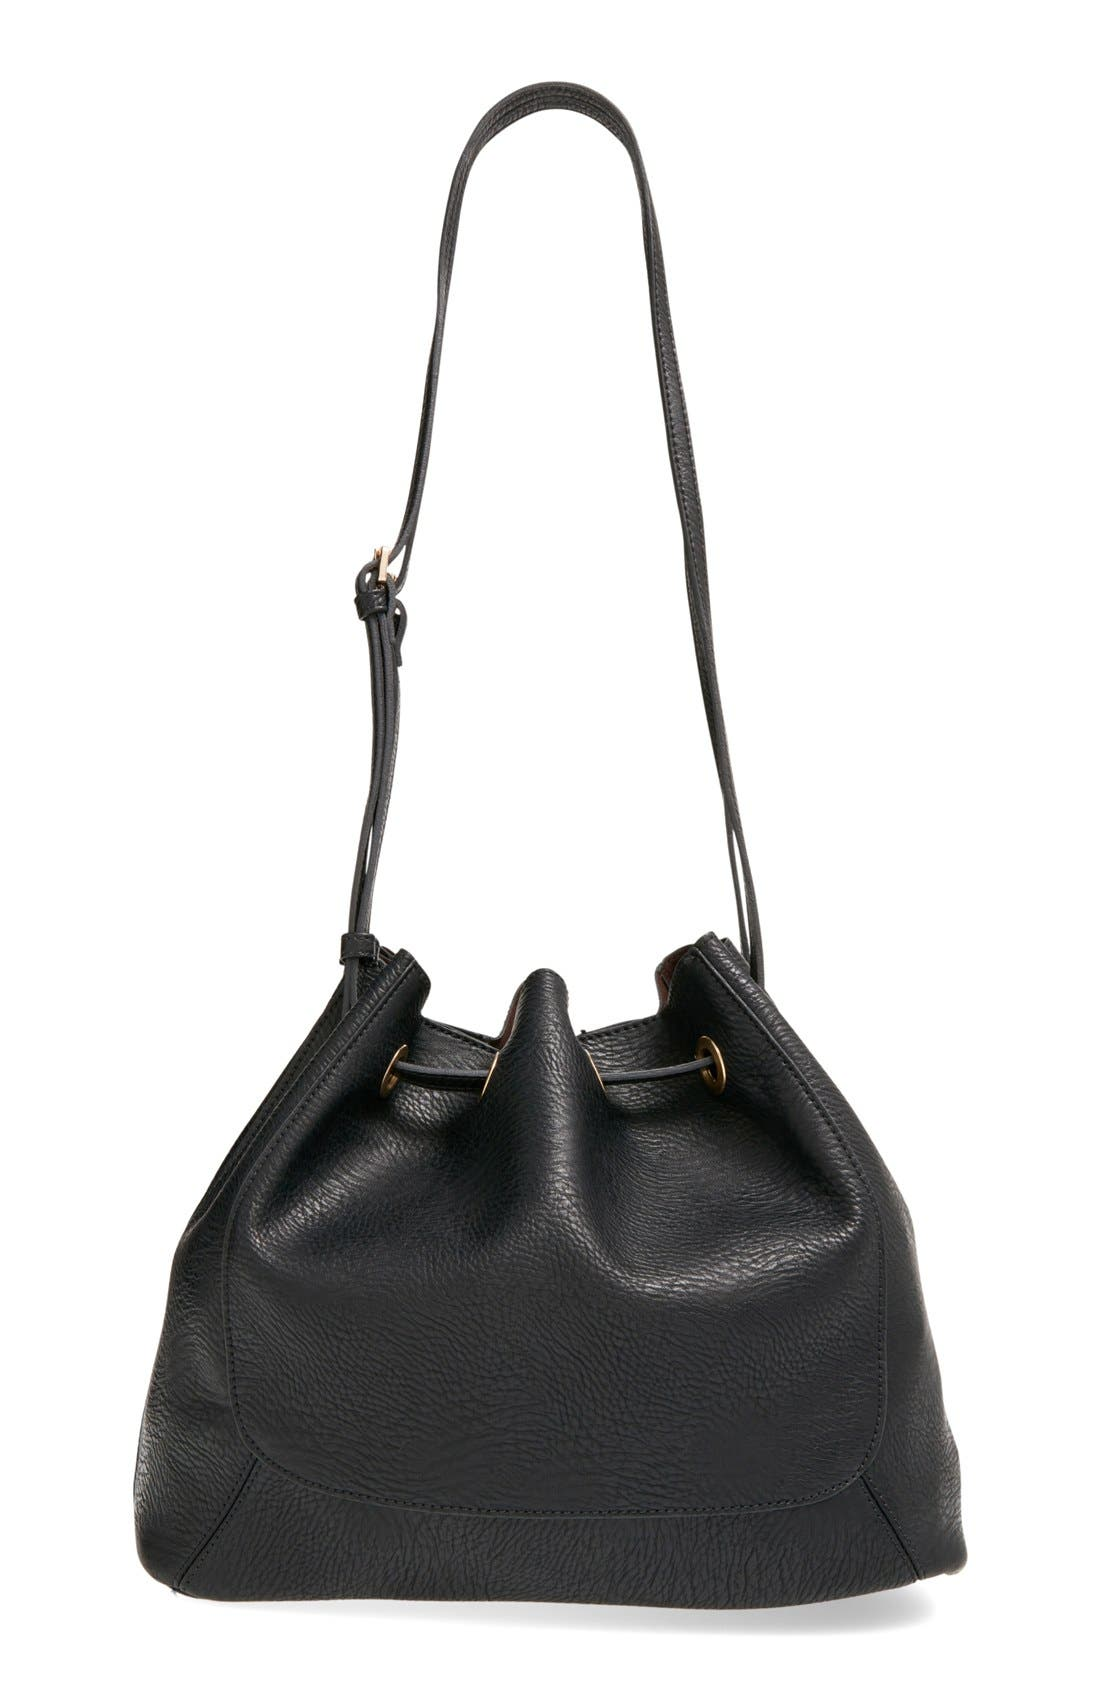 Main Image - Street Level Faux Leather Shoulder Bag